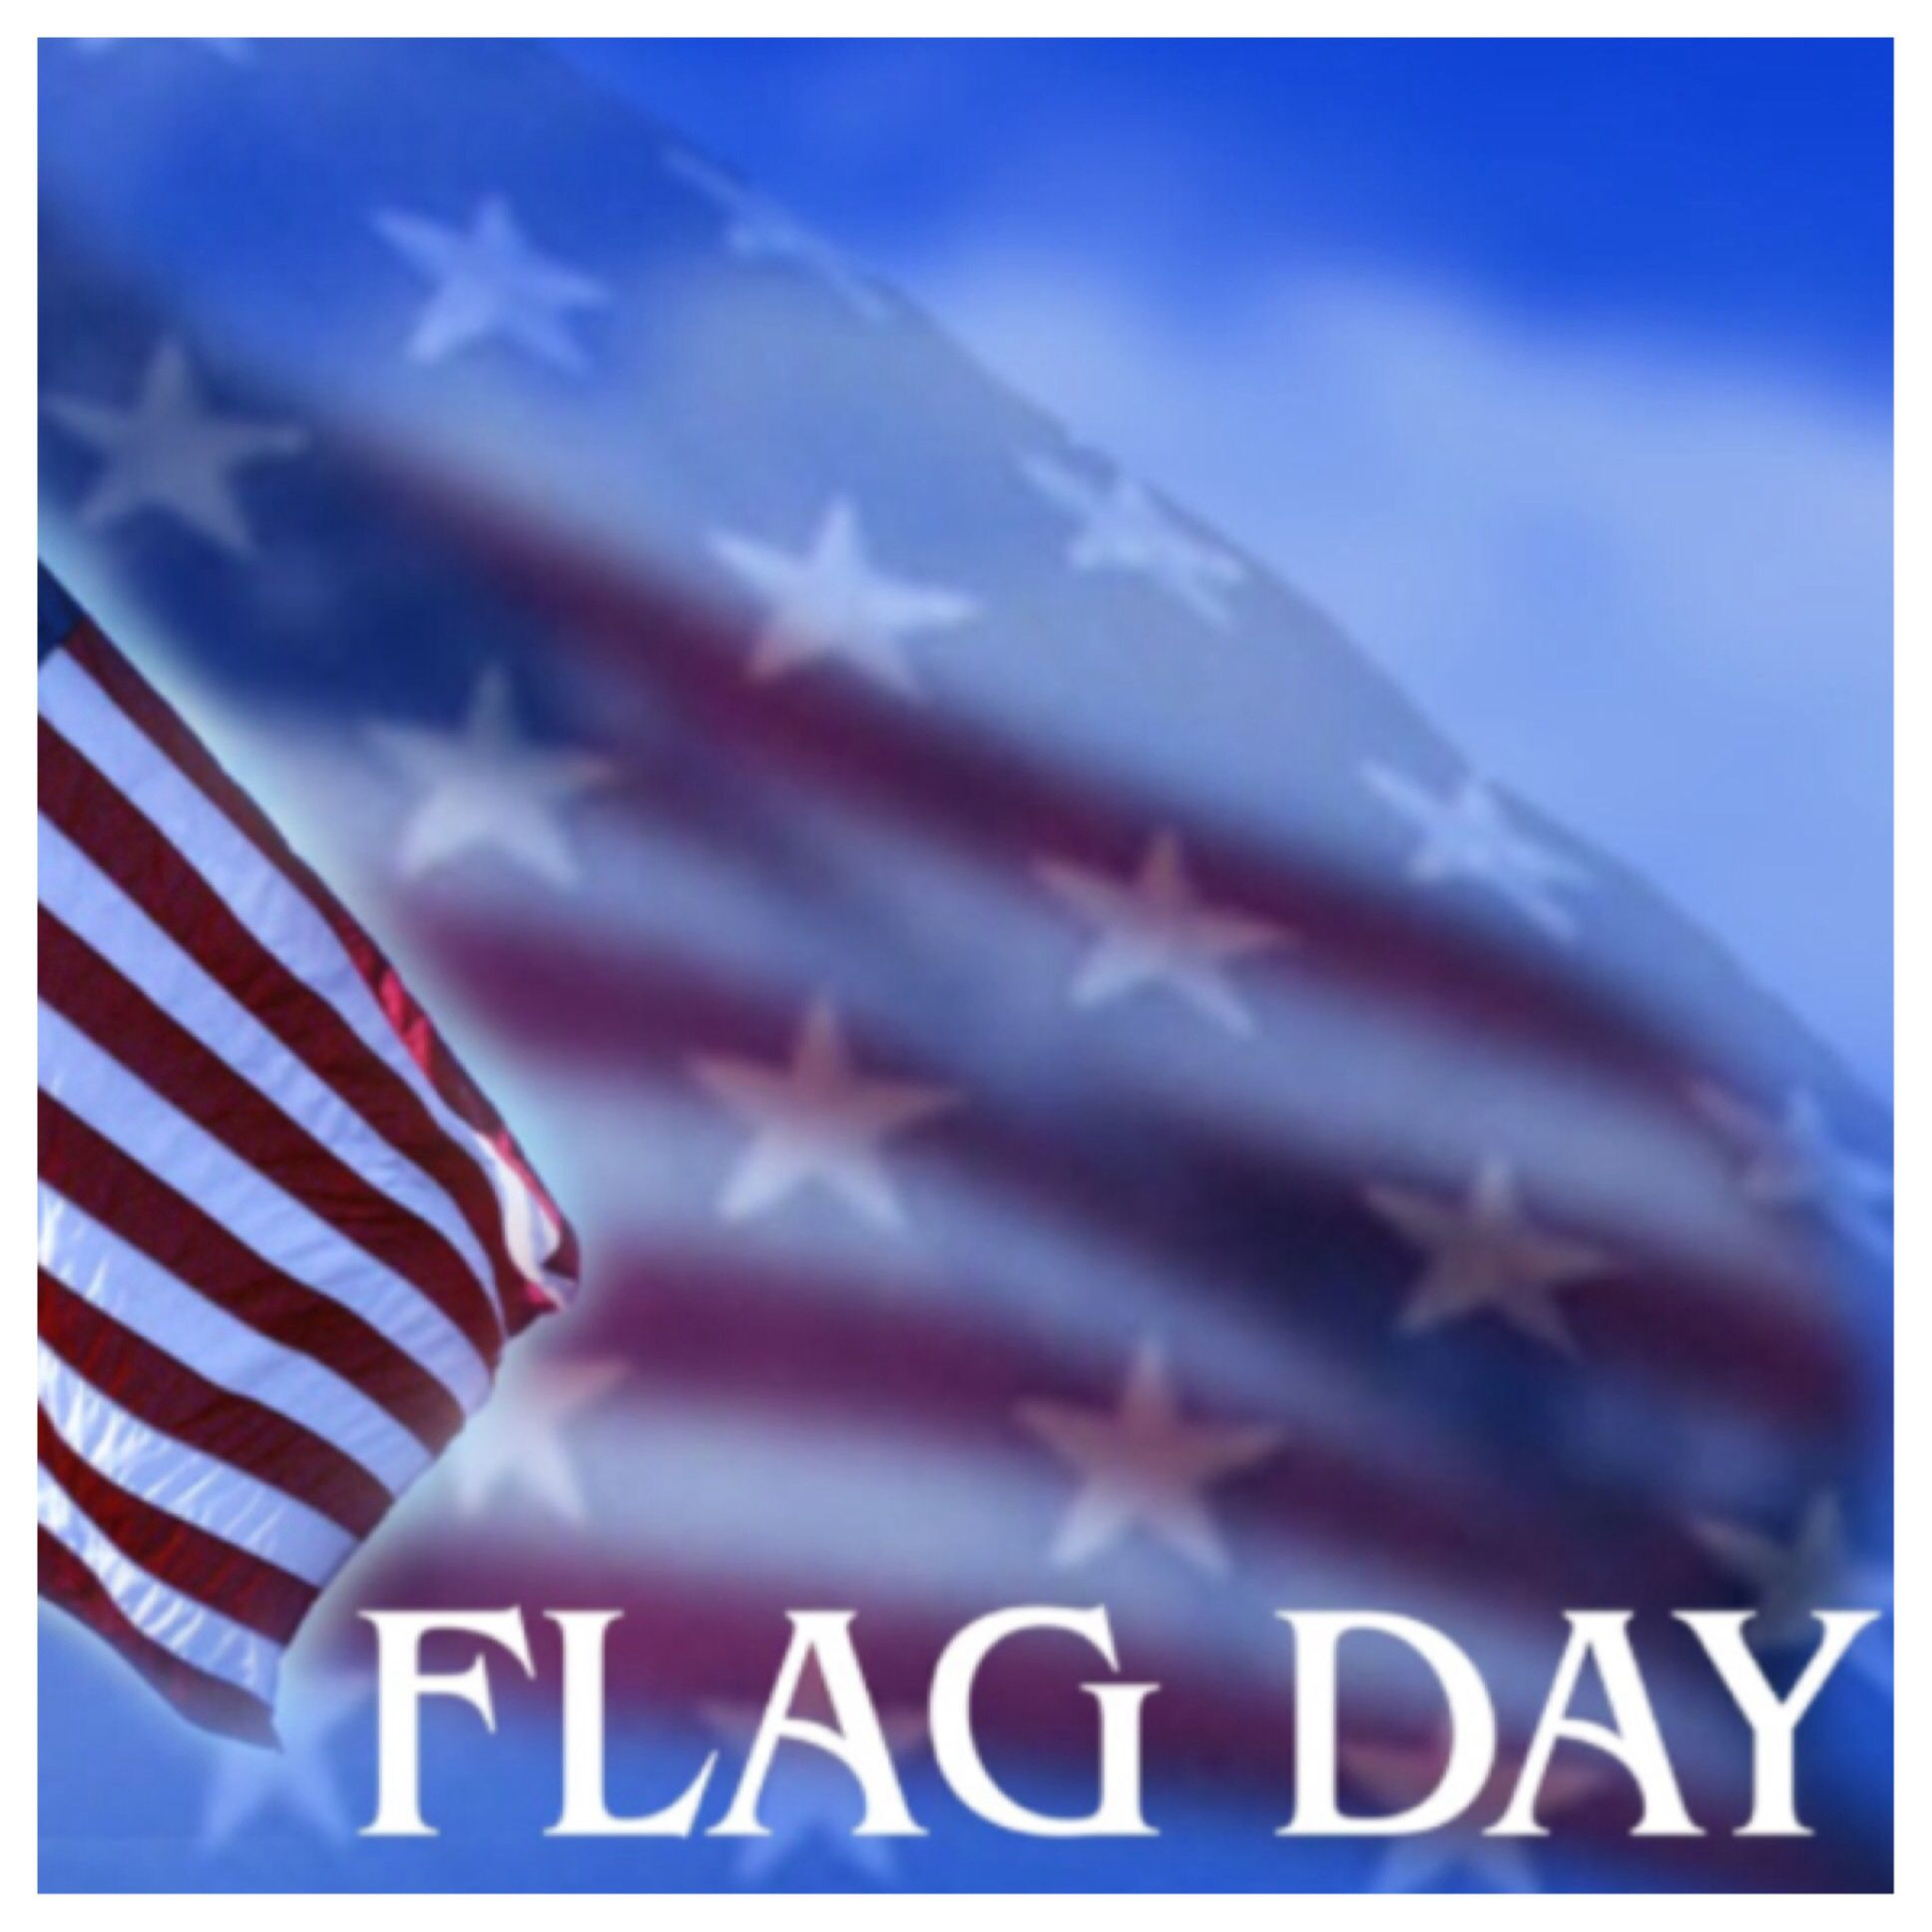 when was flag day